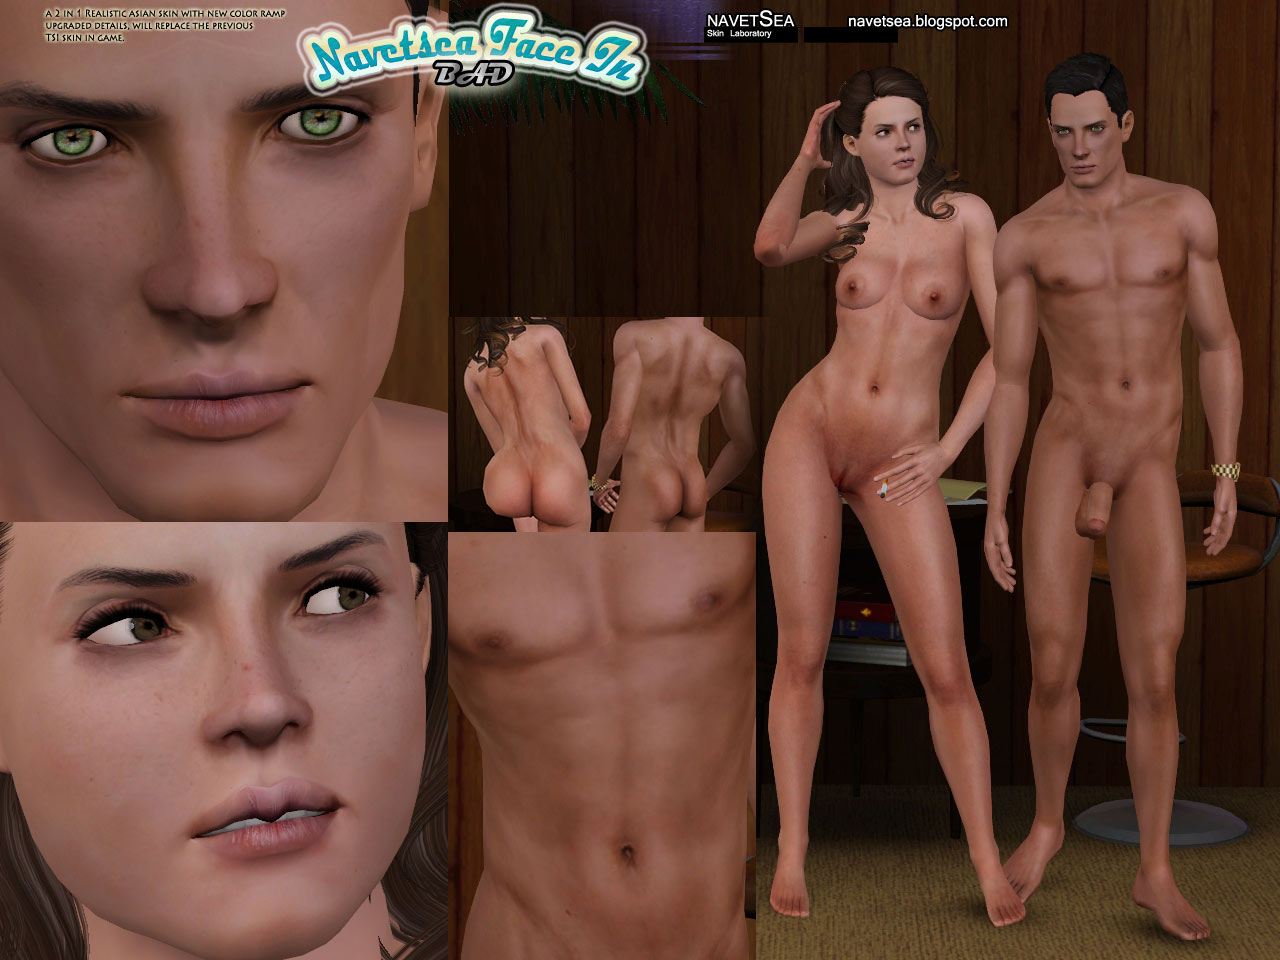 Sims nude gay sex anime beauty sister